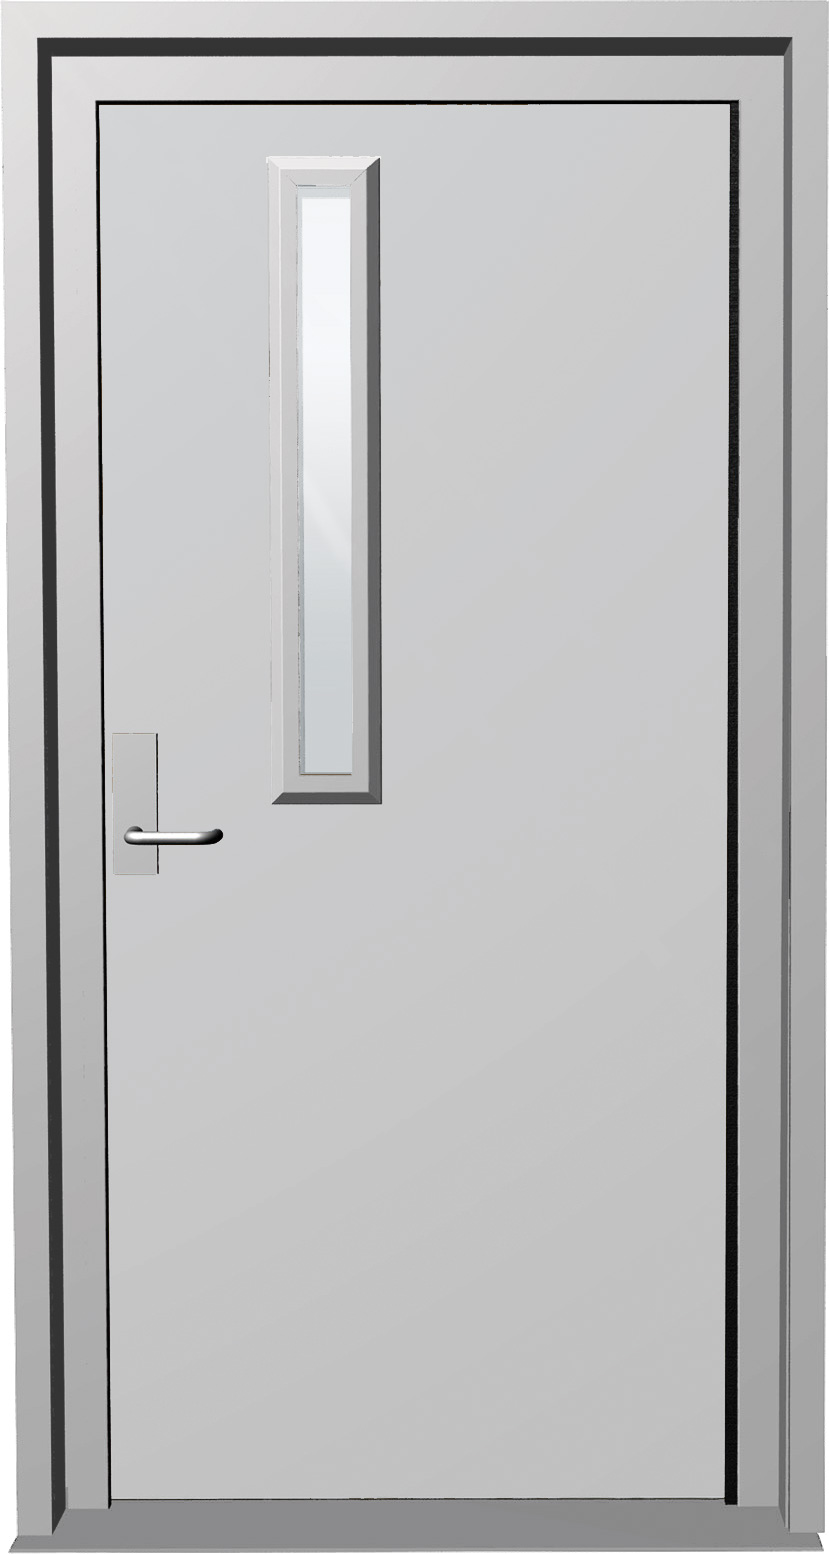 Accent Window  sc 1 st  Wenger u0026 JR Clancy - Wenger Corporation & Acoustical Doors - Wenger